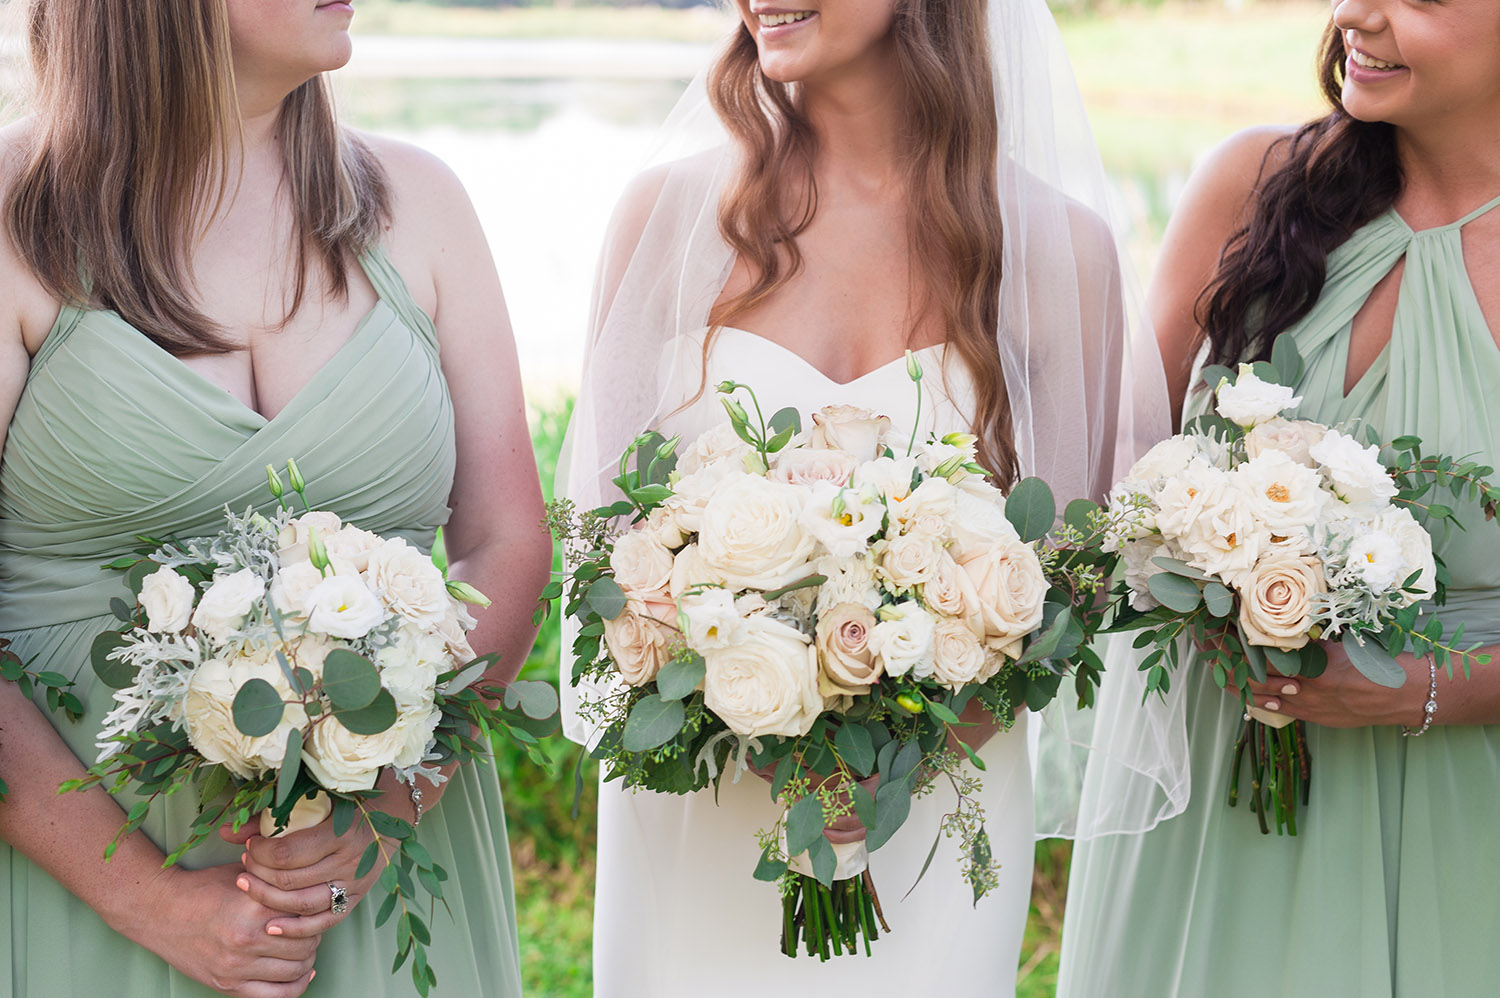 bride with bridesmaids in pale green dresses